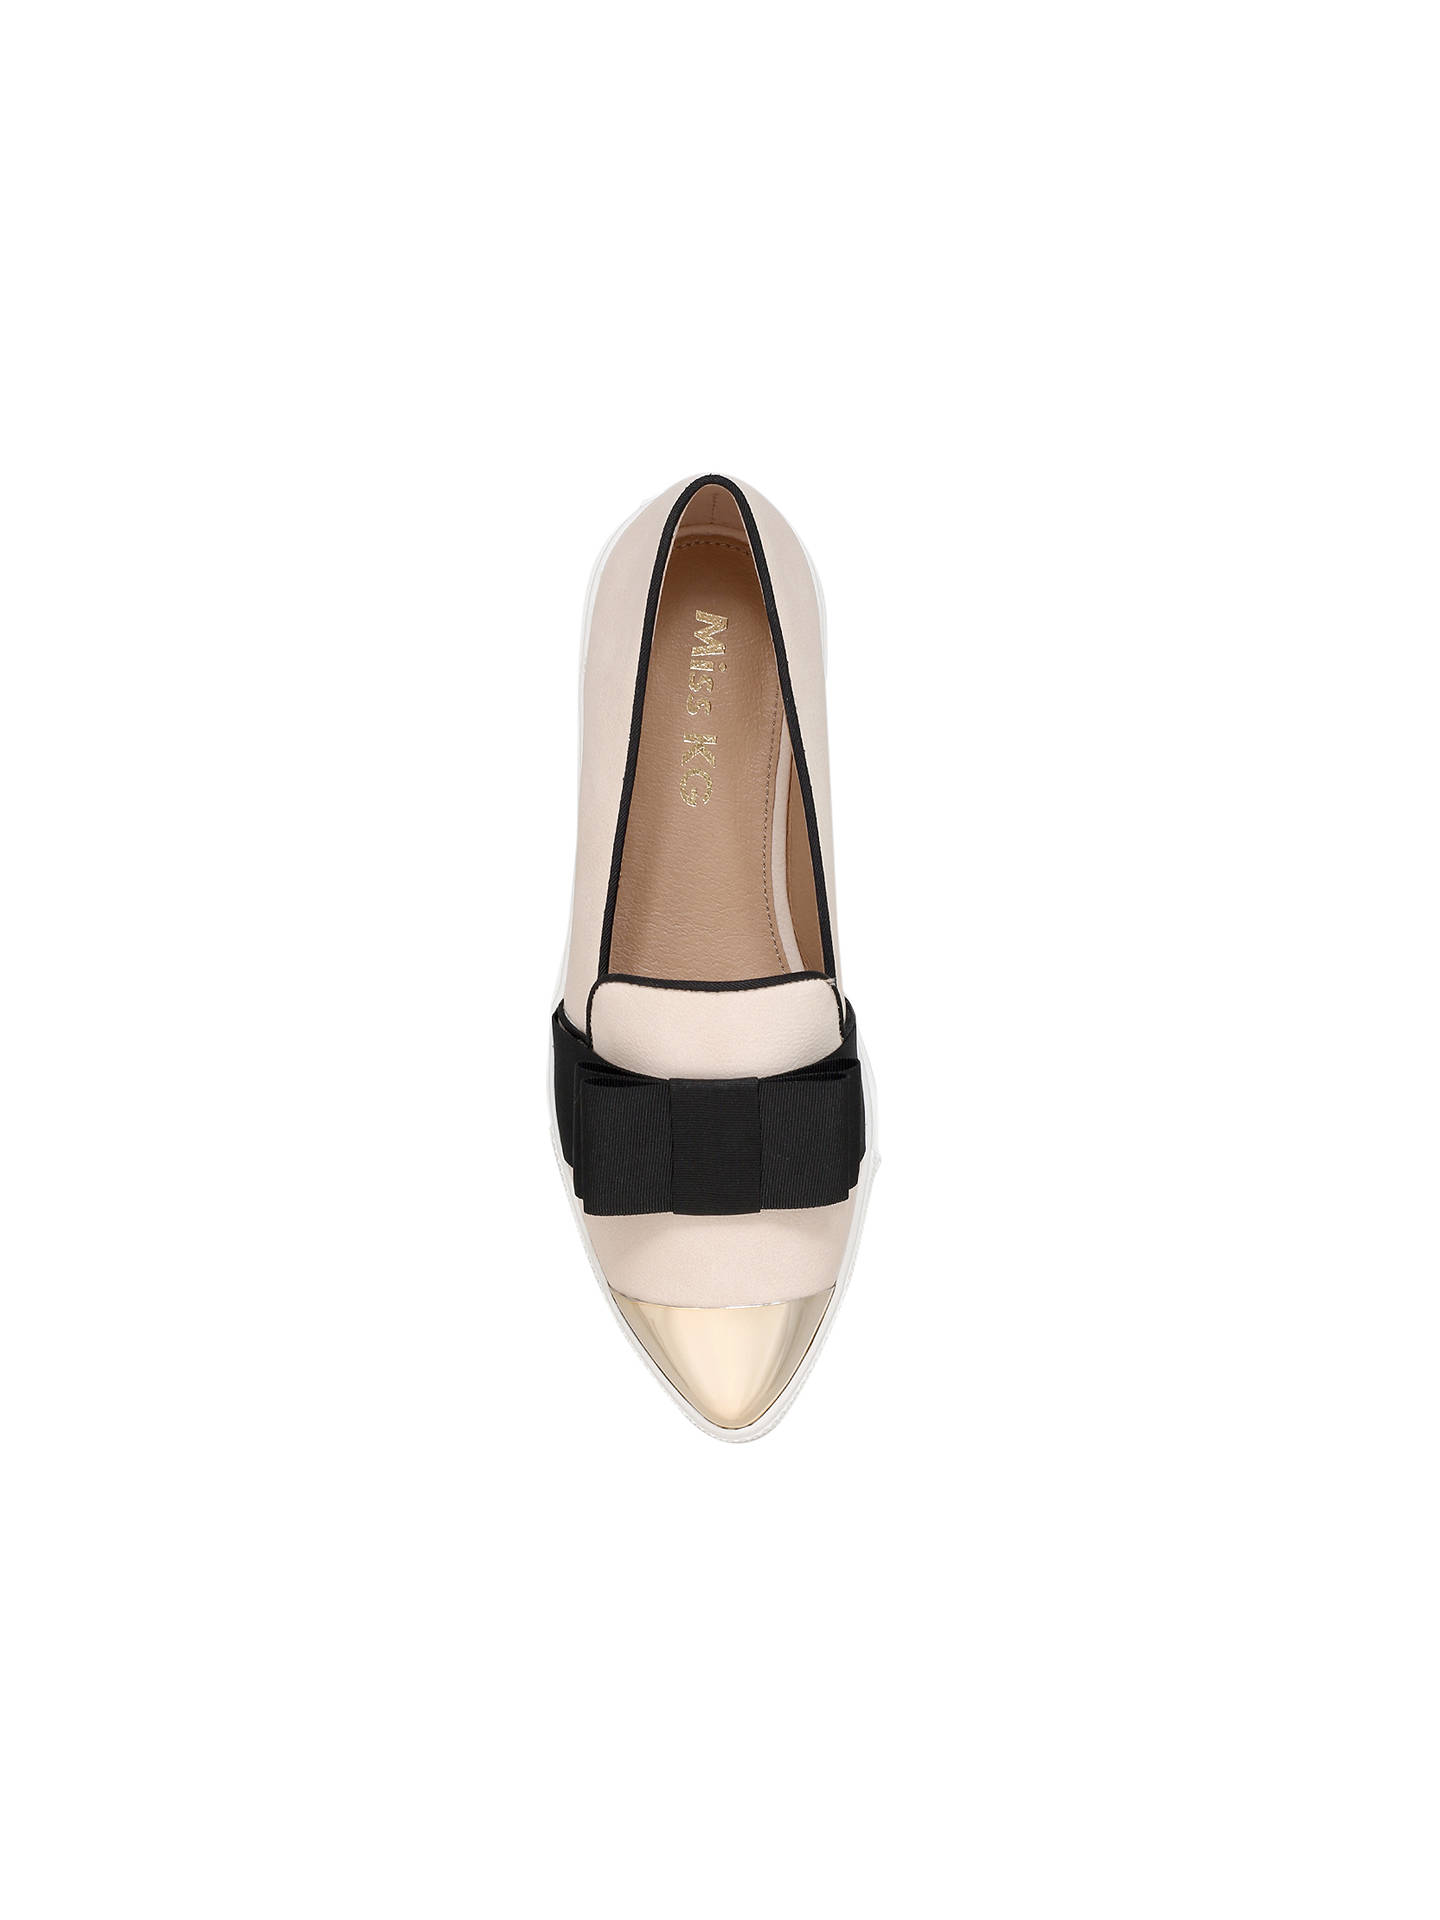 BuyMiss KG Lisa Slip On Trainers, Nude, 3 Online at johnlewis.com